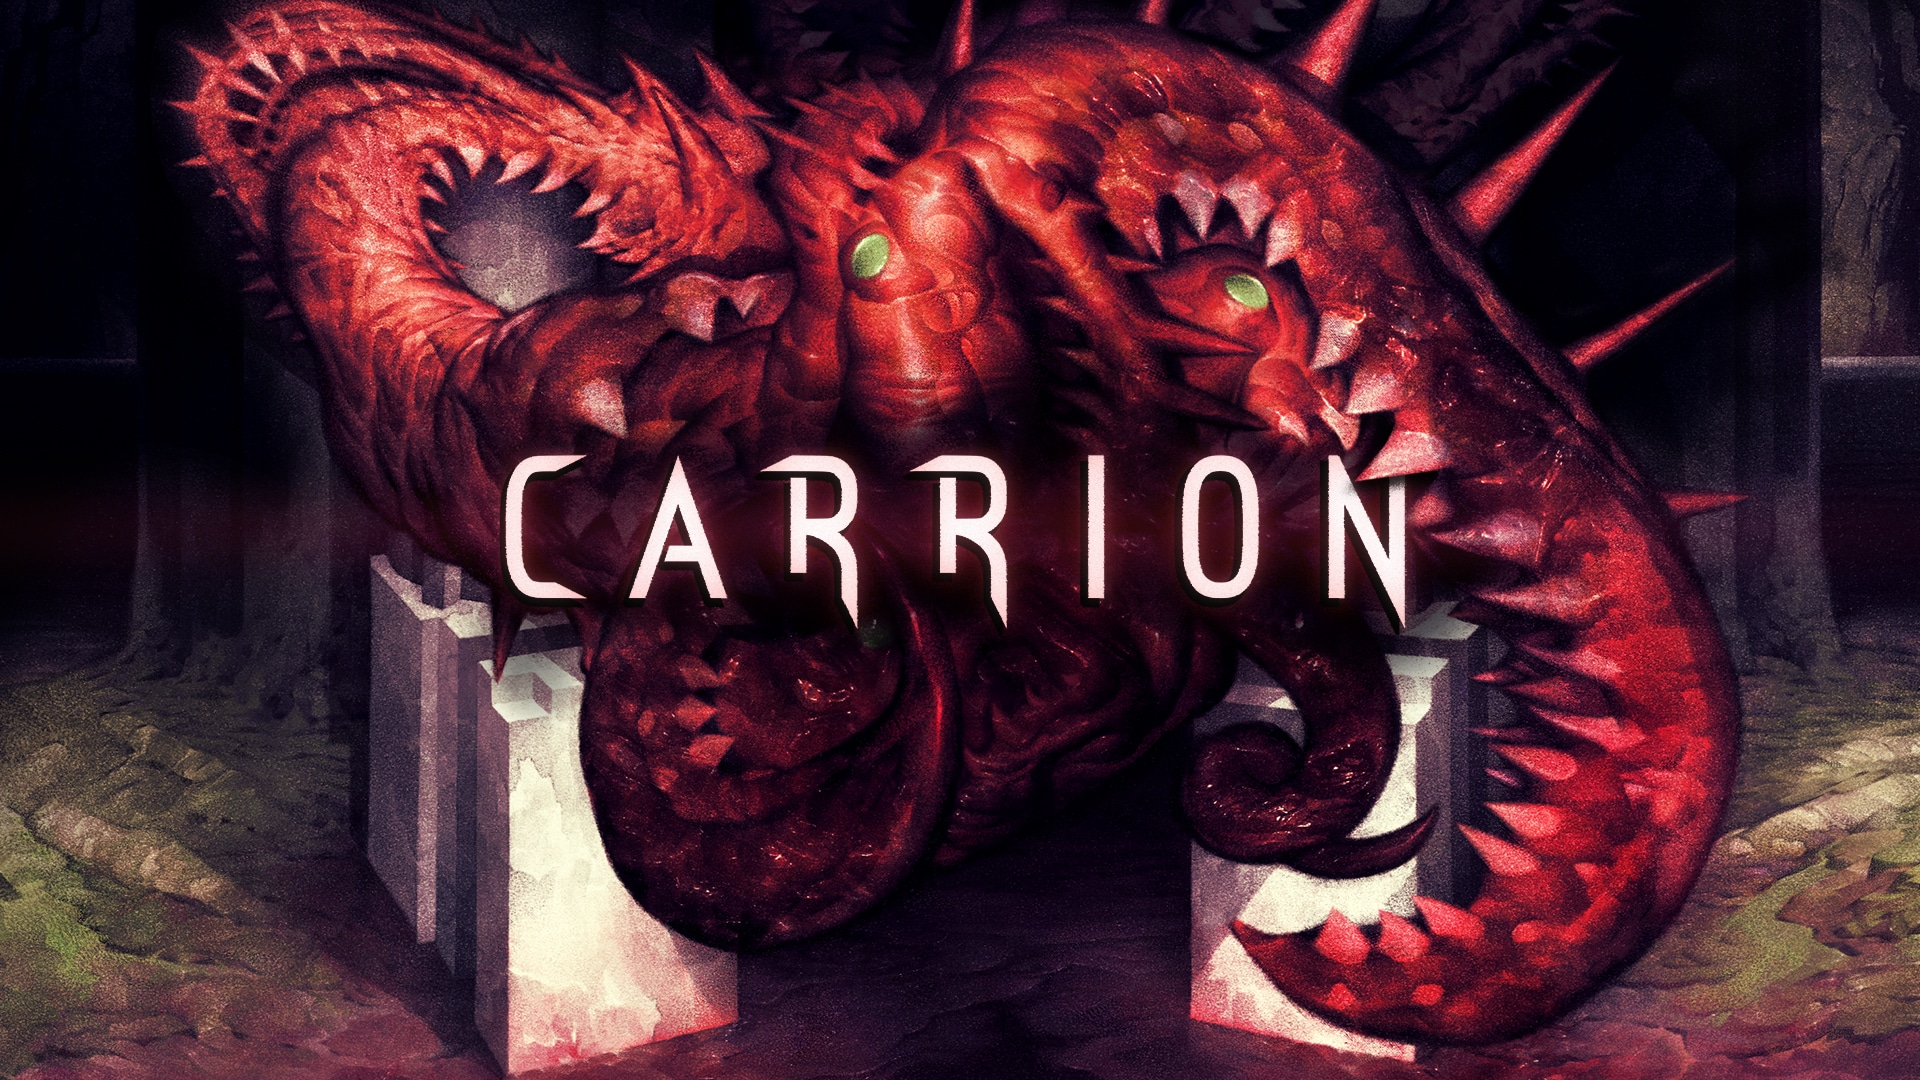 Carrion announced